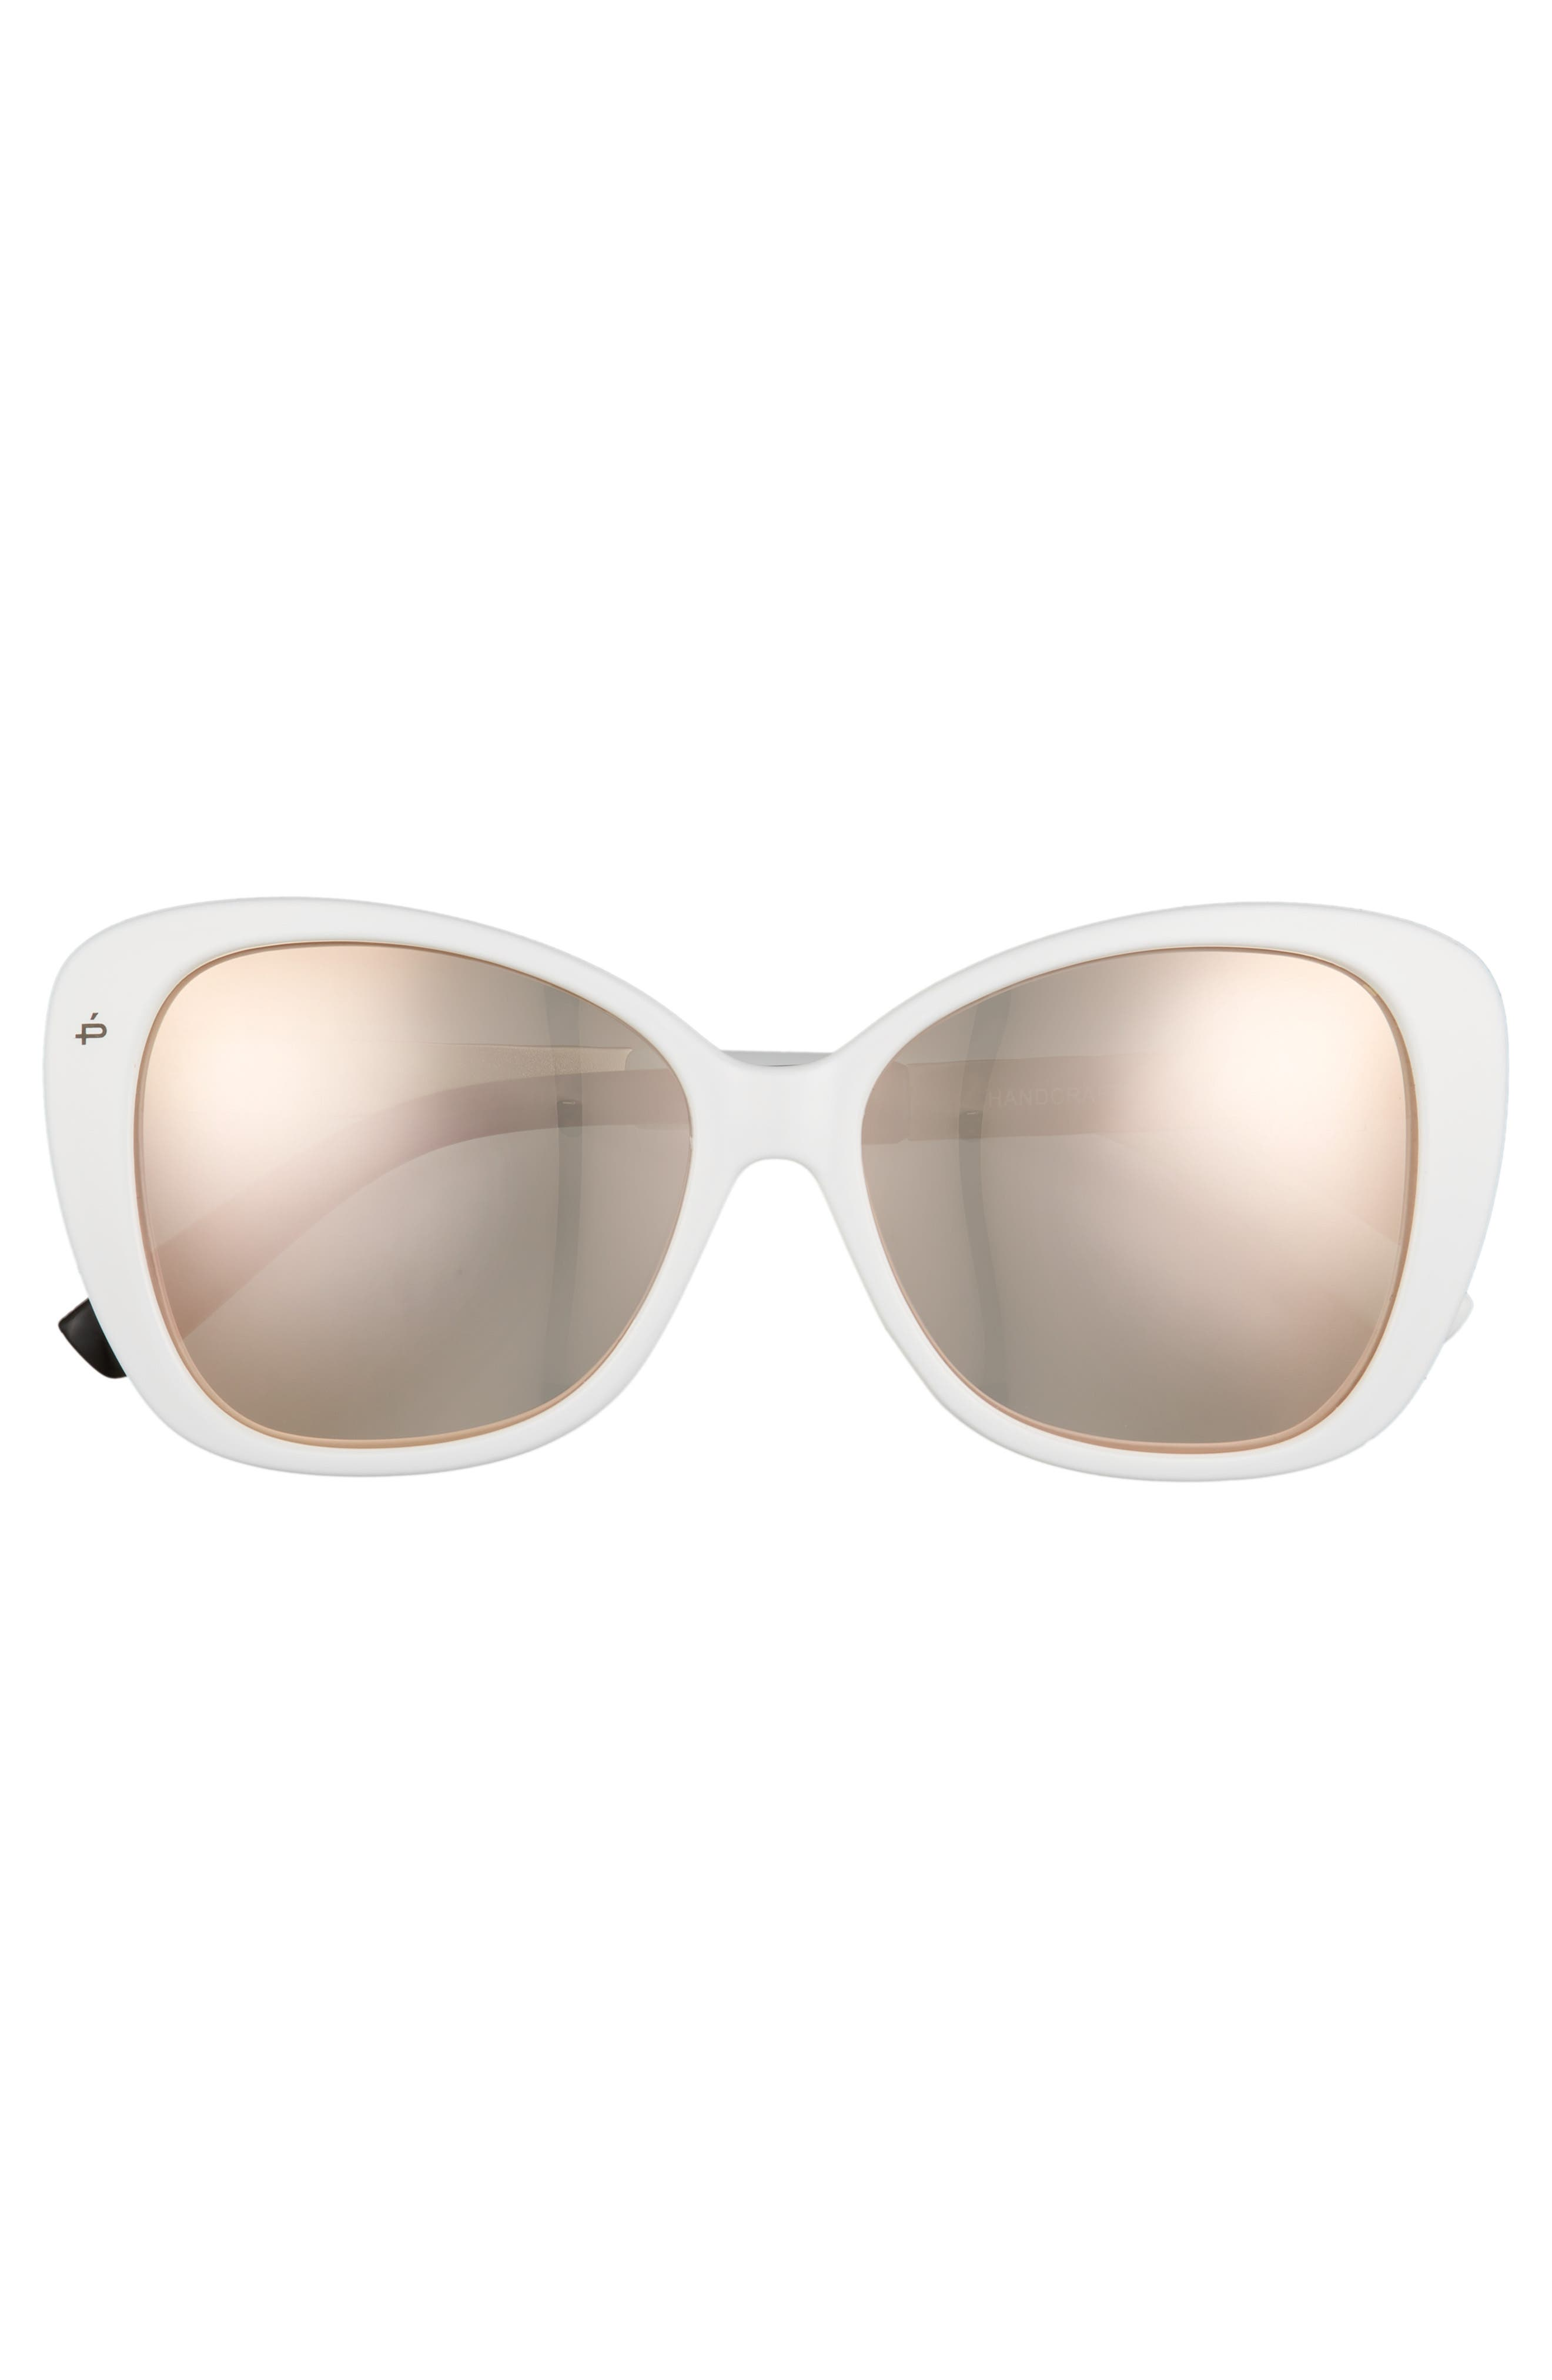 Privé Revaux The Jackie O 56mm Cat Eye Sunglasses,                             Alternate thumbnail 3, color,                             100